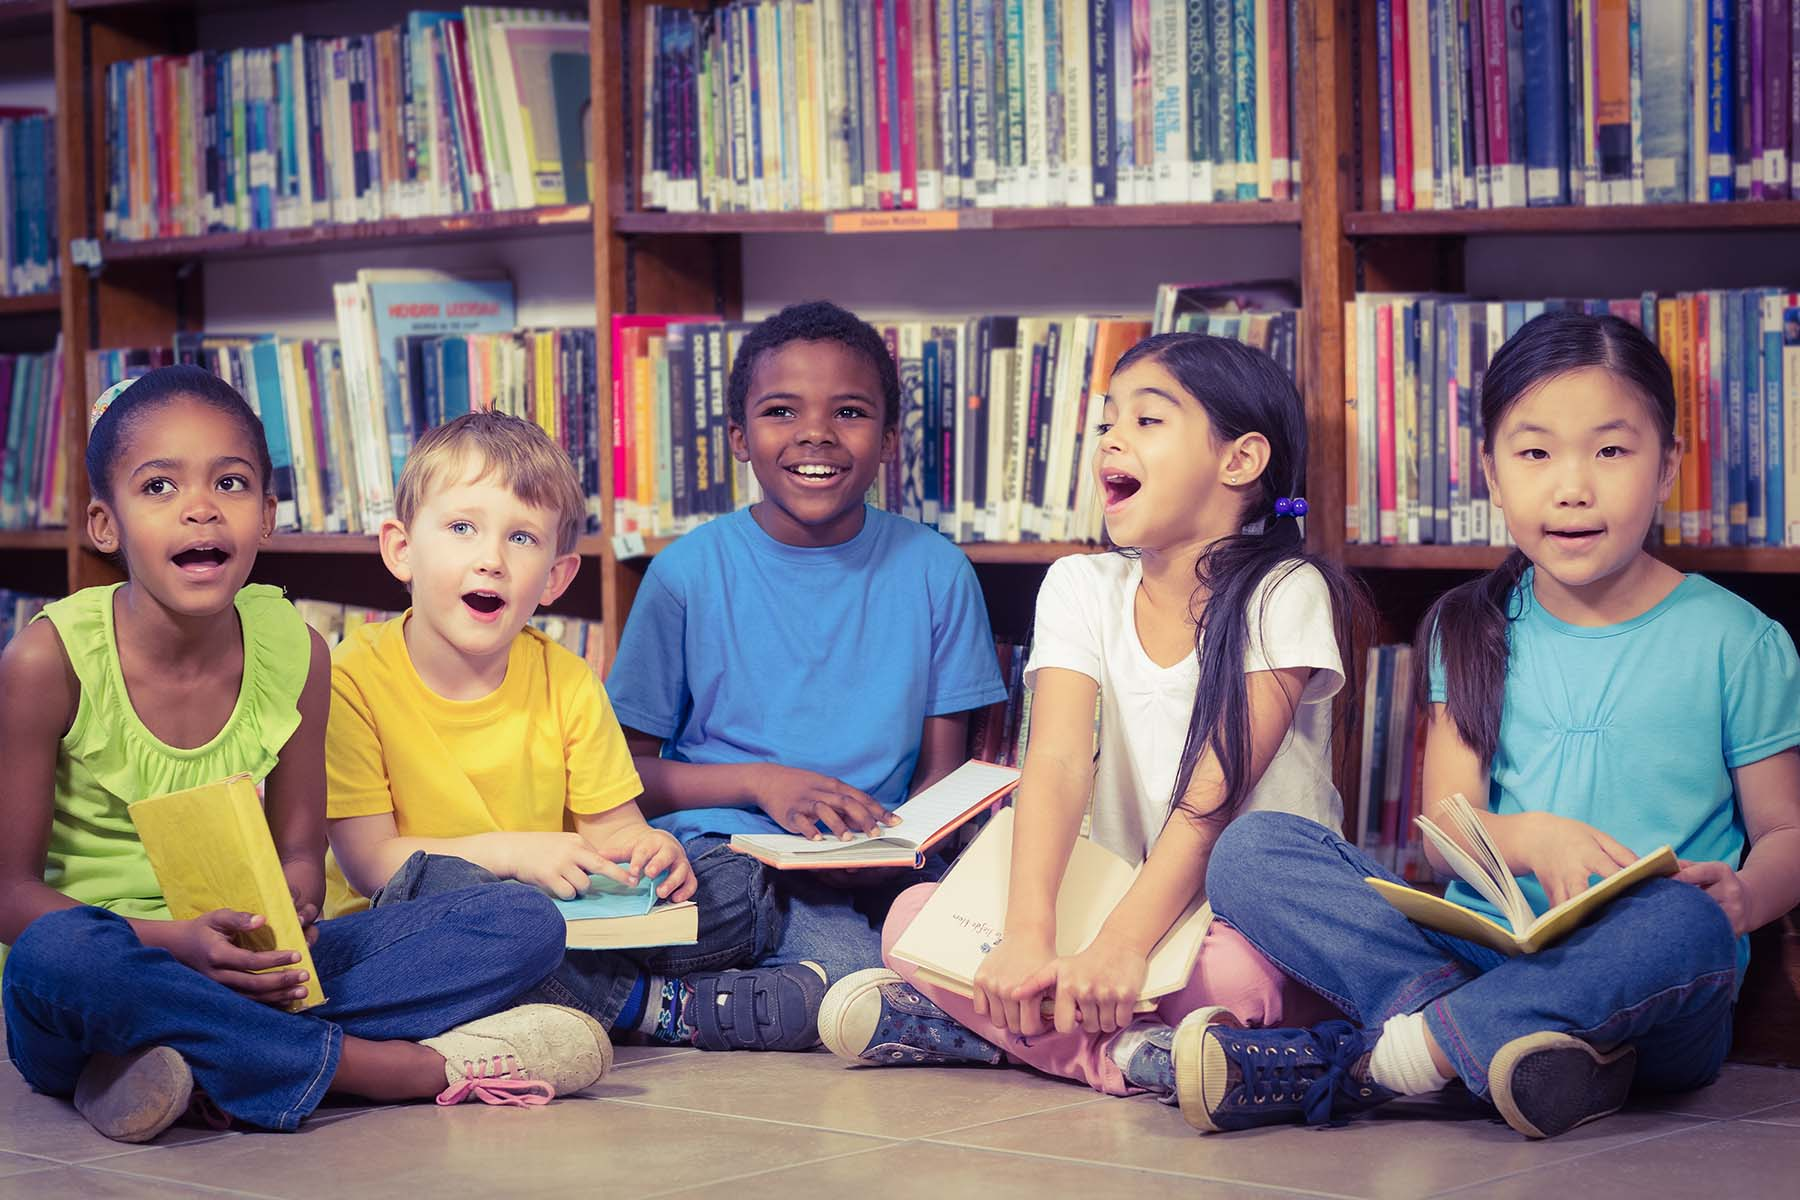 A group of children sitting on the floor of a library